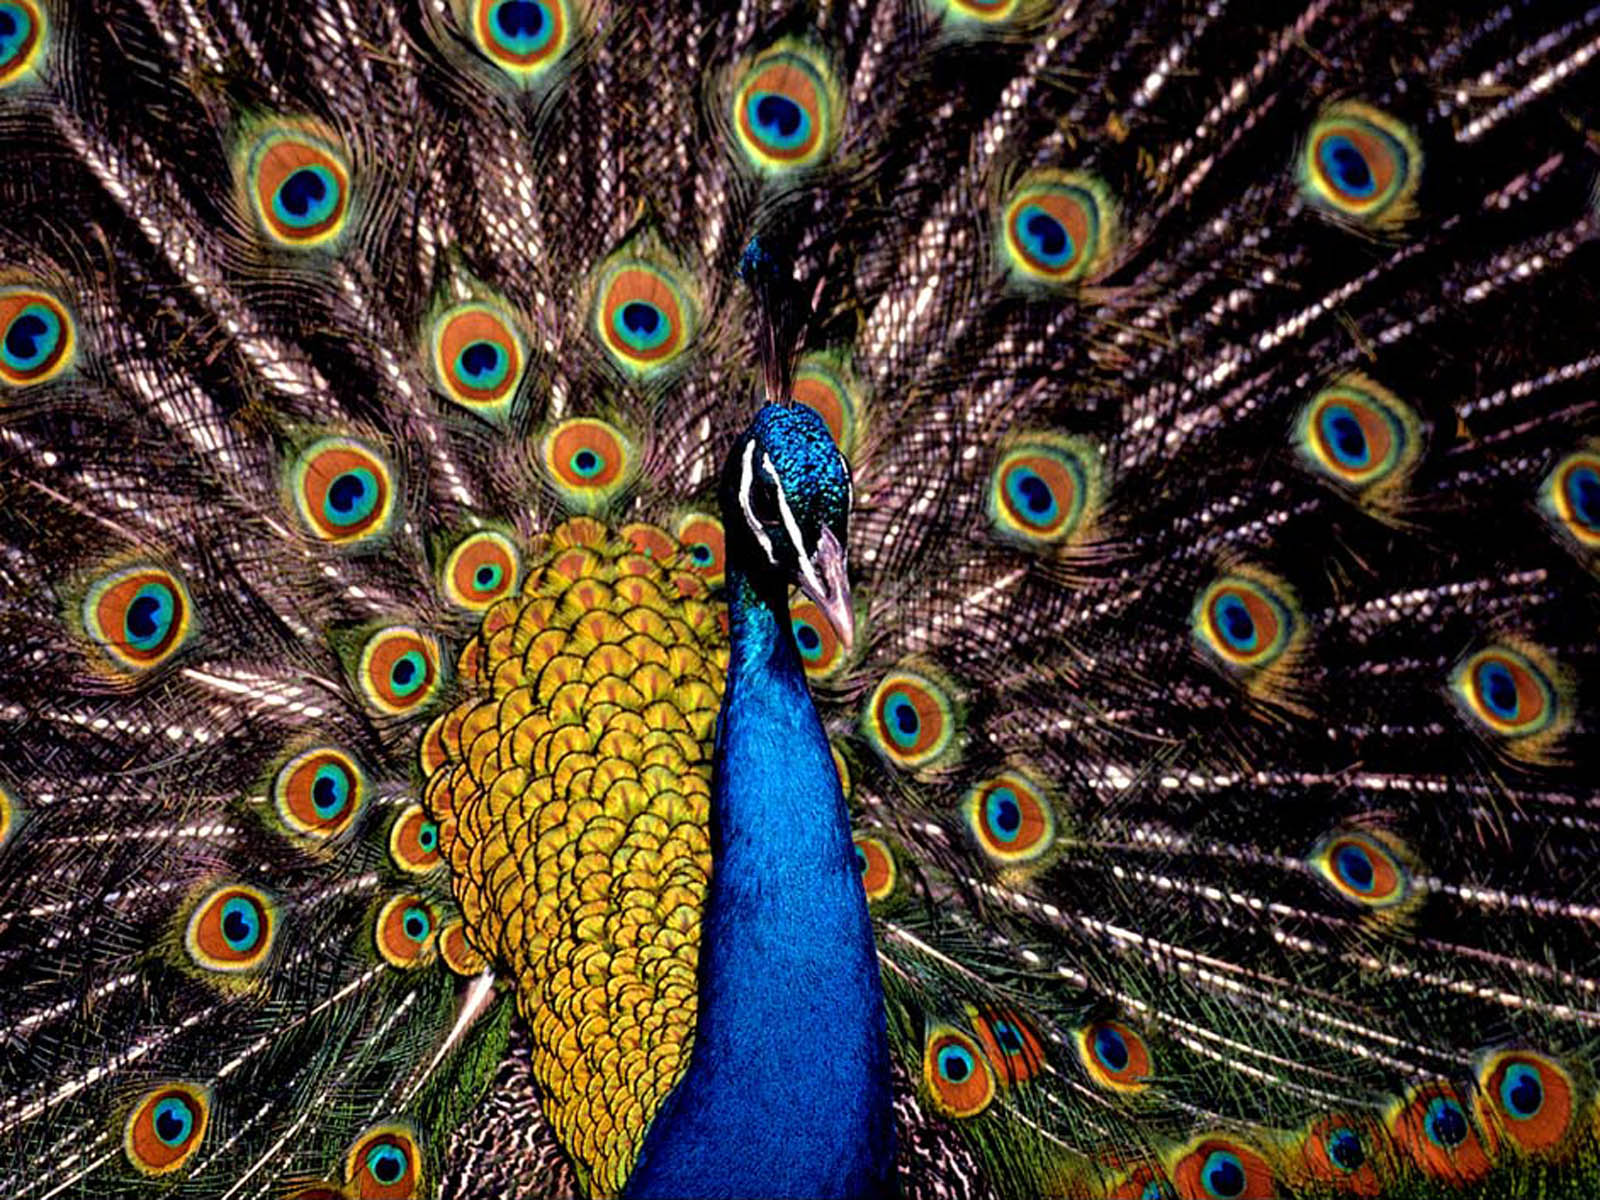 Peacock wallpapers - photo#19